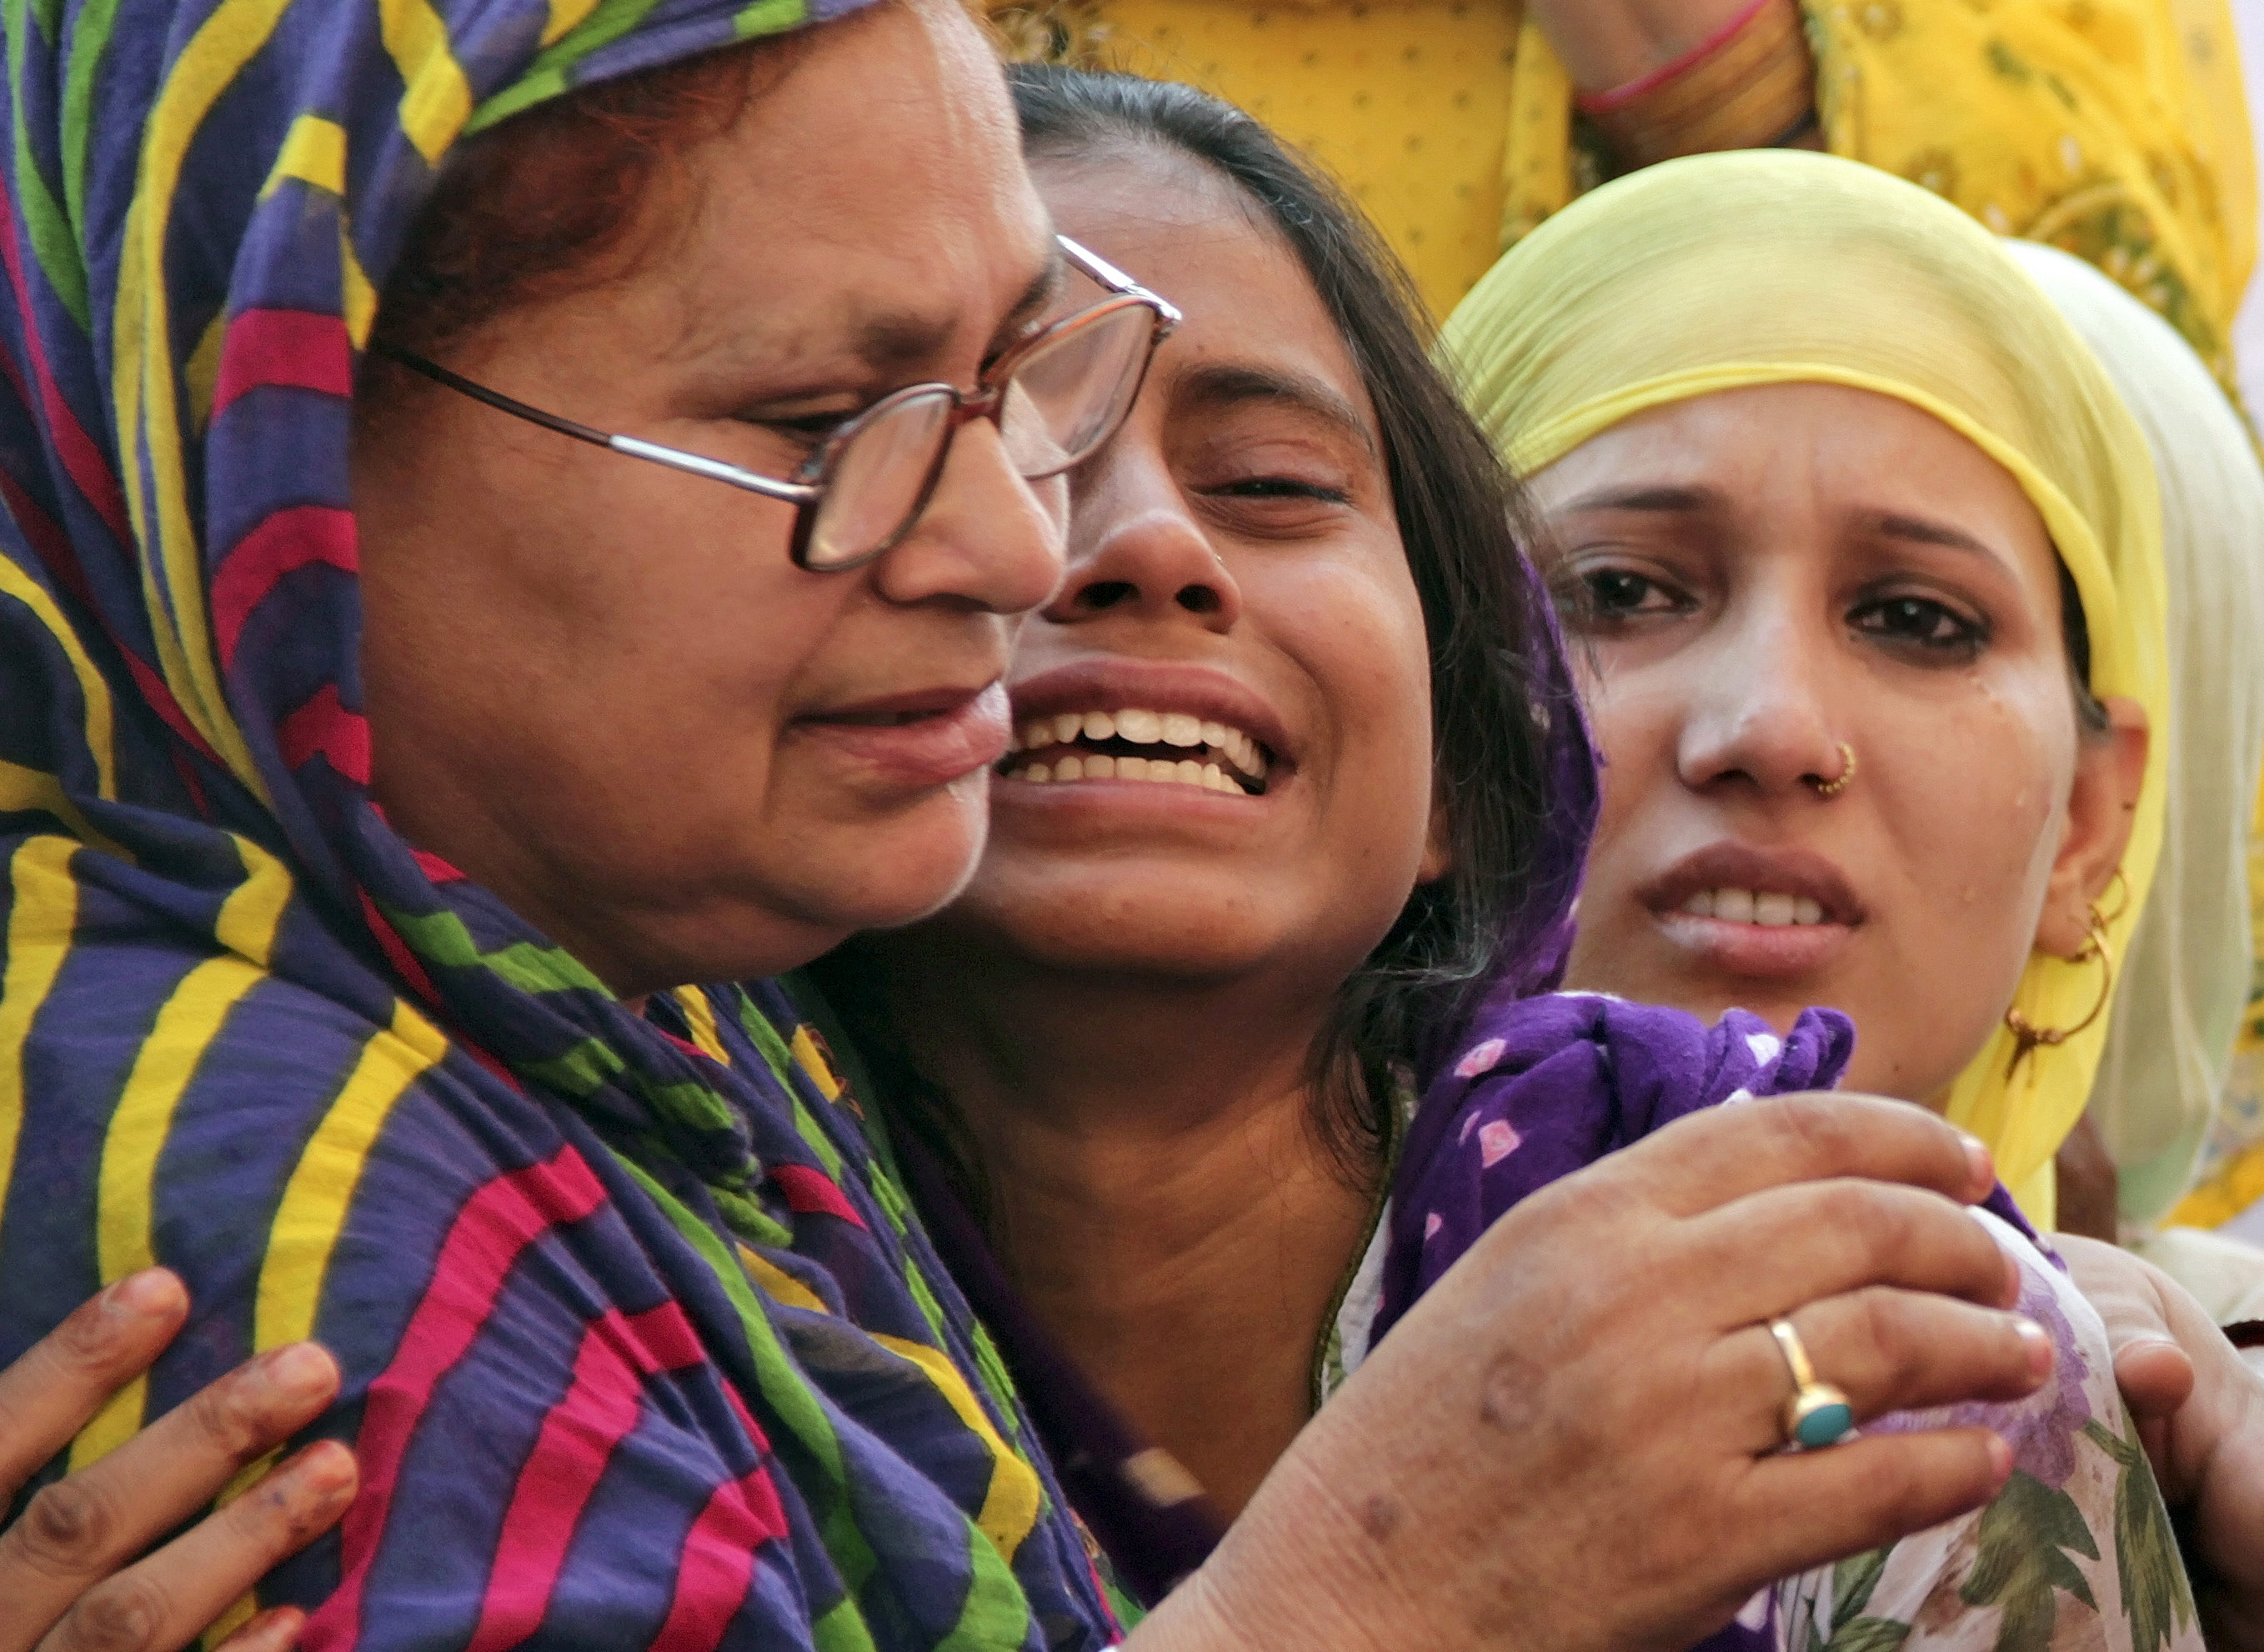 Relatives of Mohammad Akhlaq mourn after he was killed by a mob on Monday night, at his residence in Dadri town, in the northern state of Uttar Pradesh, India, September 29, 2015. A Hindu mob killed a Muslim man in India over rumours that he butchered a cow, unleashing violence that police on Wednesday blamed on tension fuelled by politicians who seek strict protection of an animal many Hindus consider sacred. Akhlaq, a blacksmith, died after being kicked and beaten with stones by at least 10 men in the town of Dadri, 50 km from the capital, New Delhi, on Monday night. Picture taken September 29, 2015. REUTERS/Stringer       TPX IMAGES OF THE DAY      - RTS2FRB